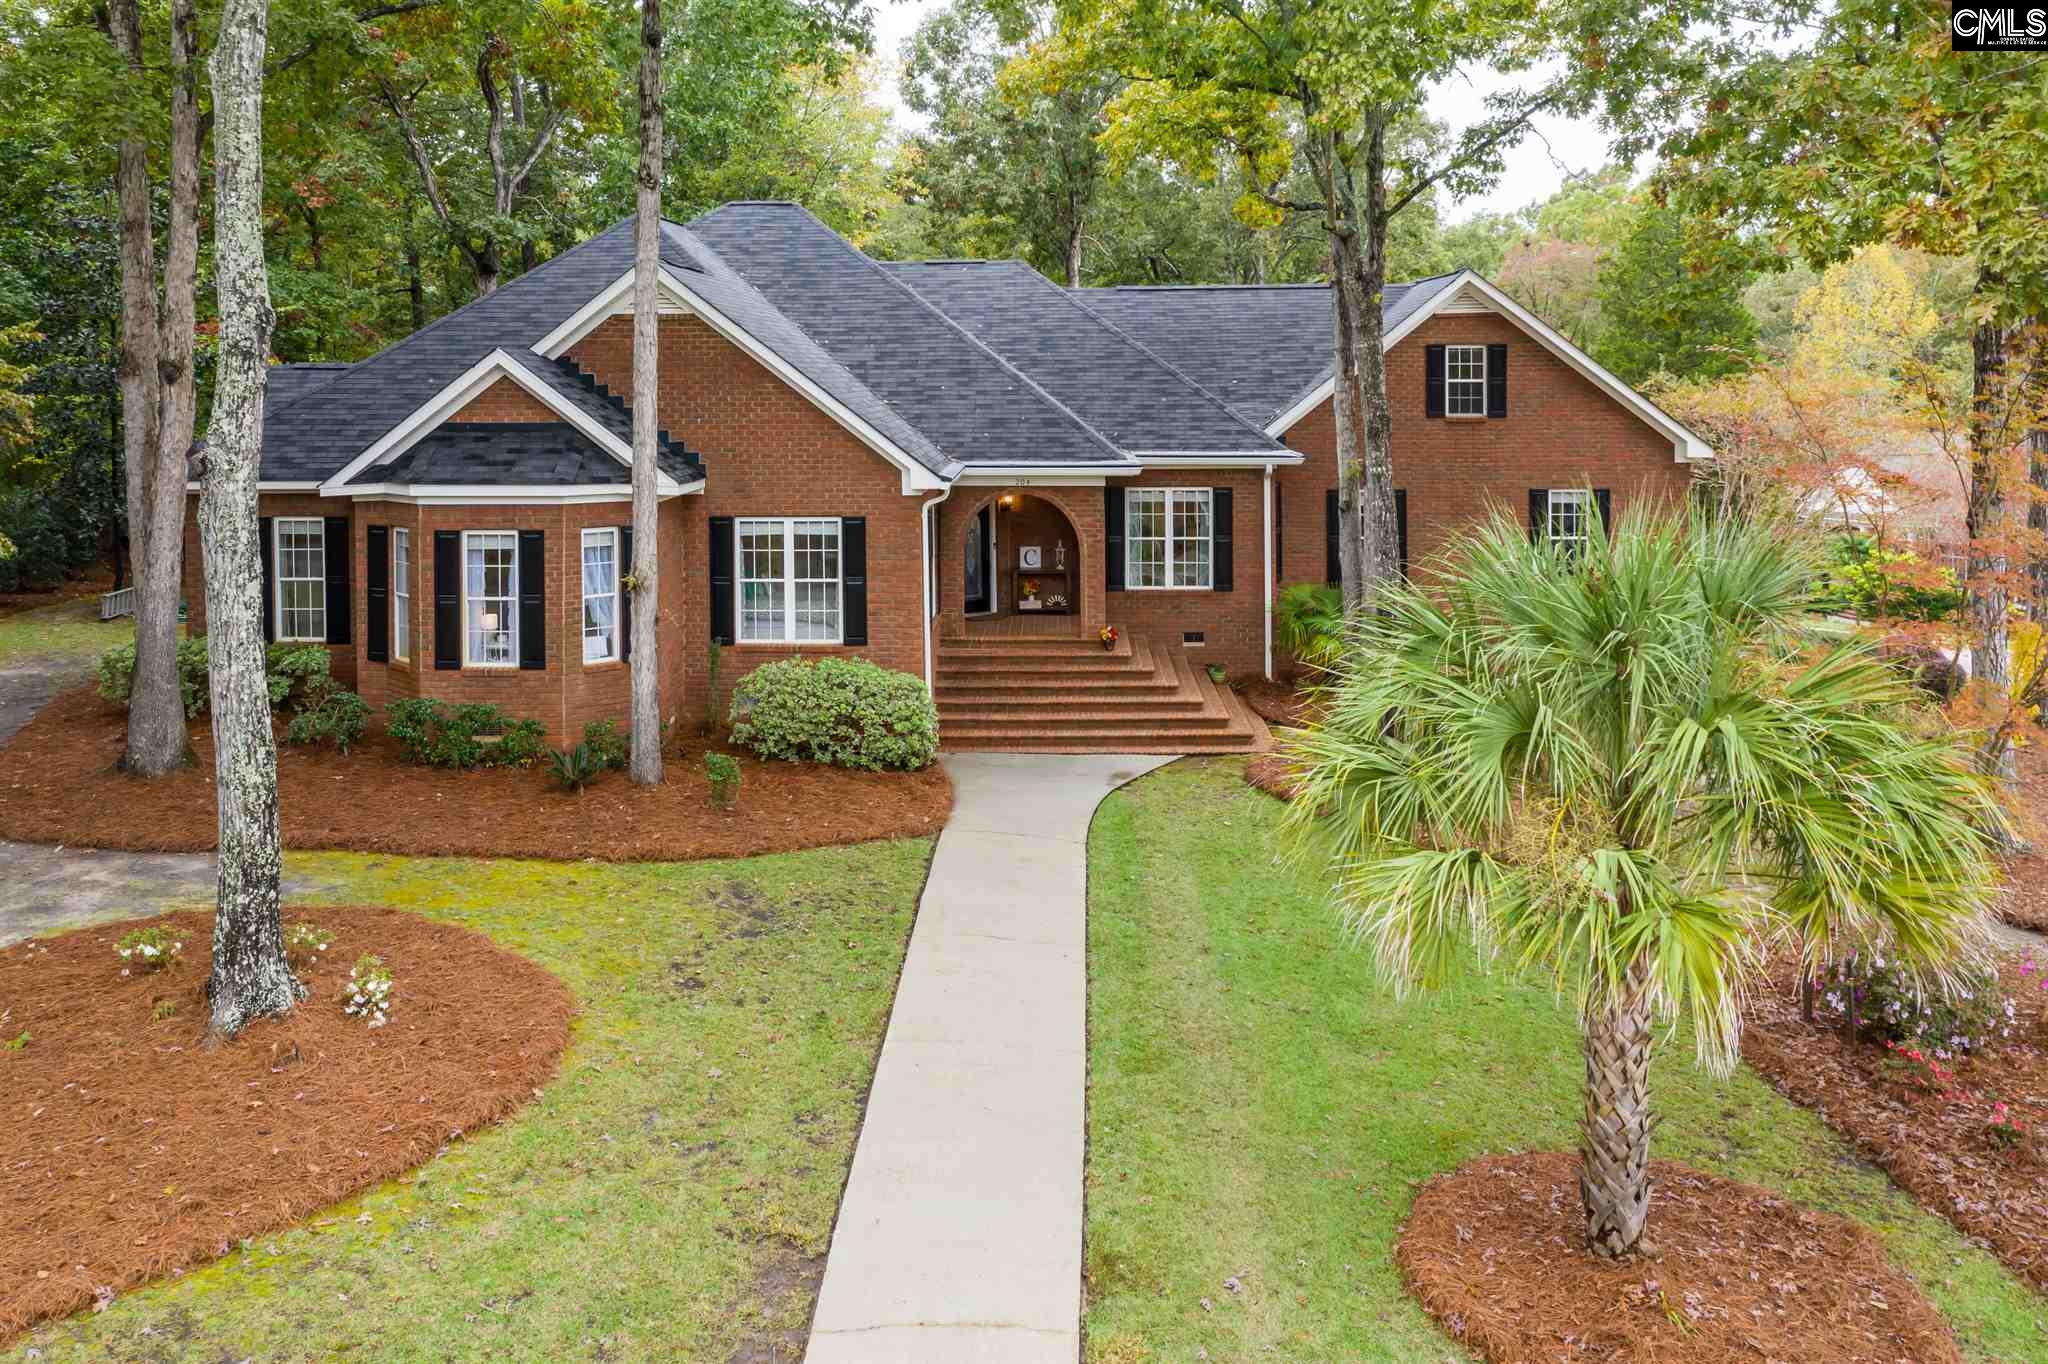 204 Misty Oaks Lexington, SC 29072